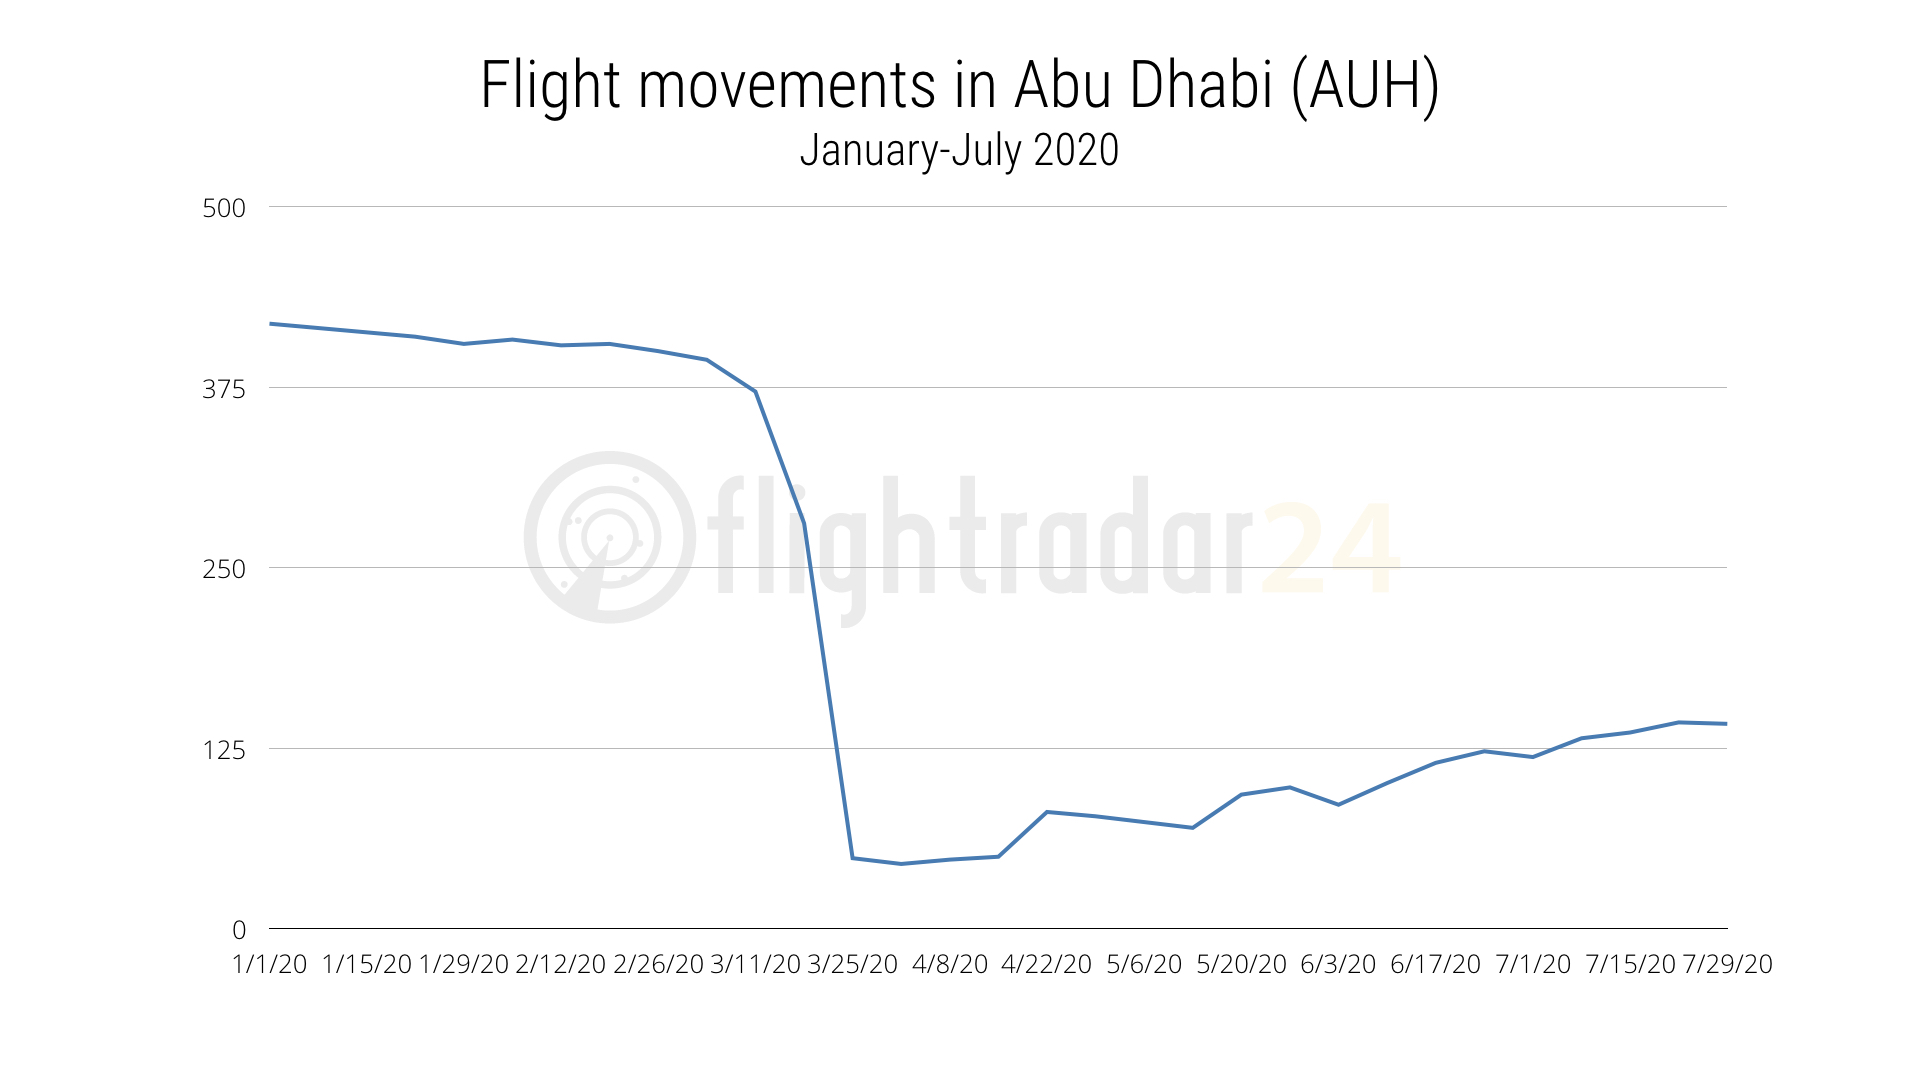 Flights to/from Abu Dhabi, January-July 2020